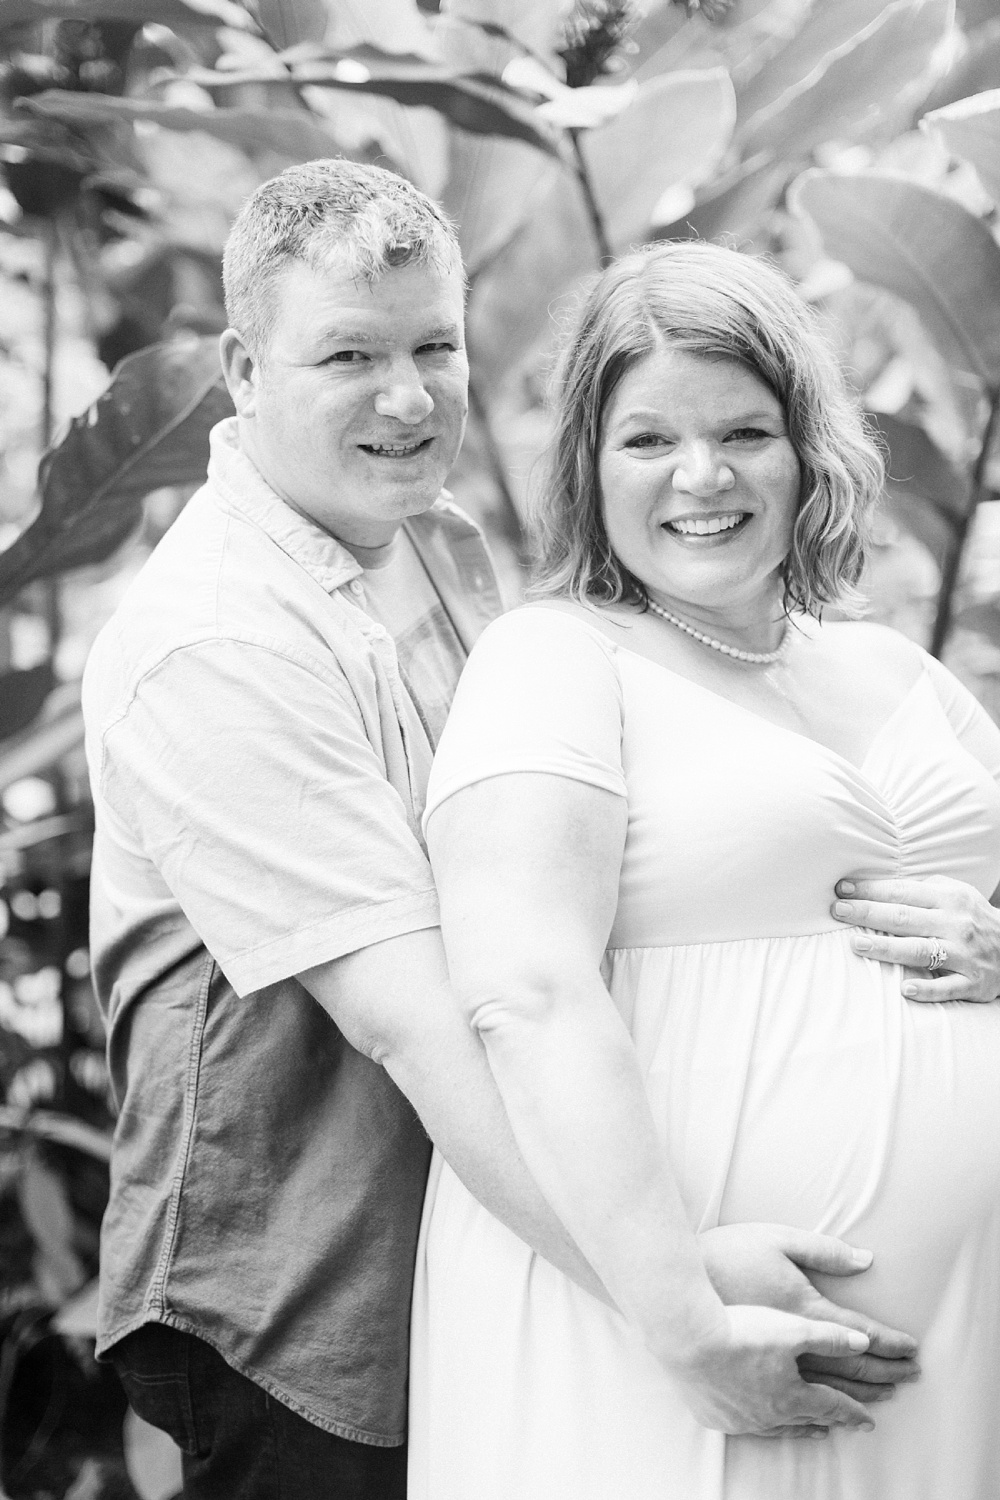 husband and wife cradle wife's pregnant belly